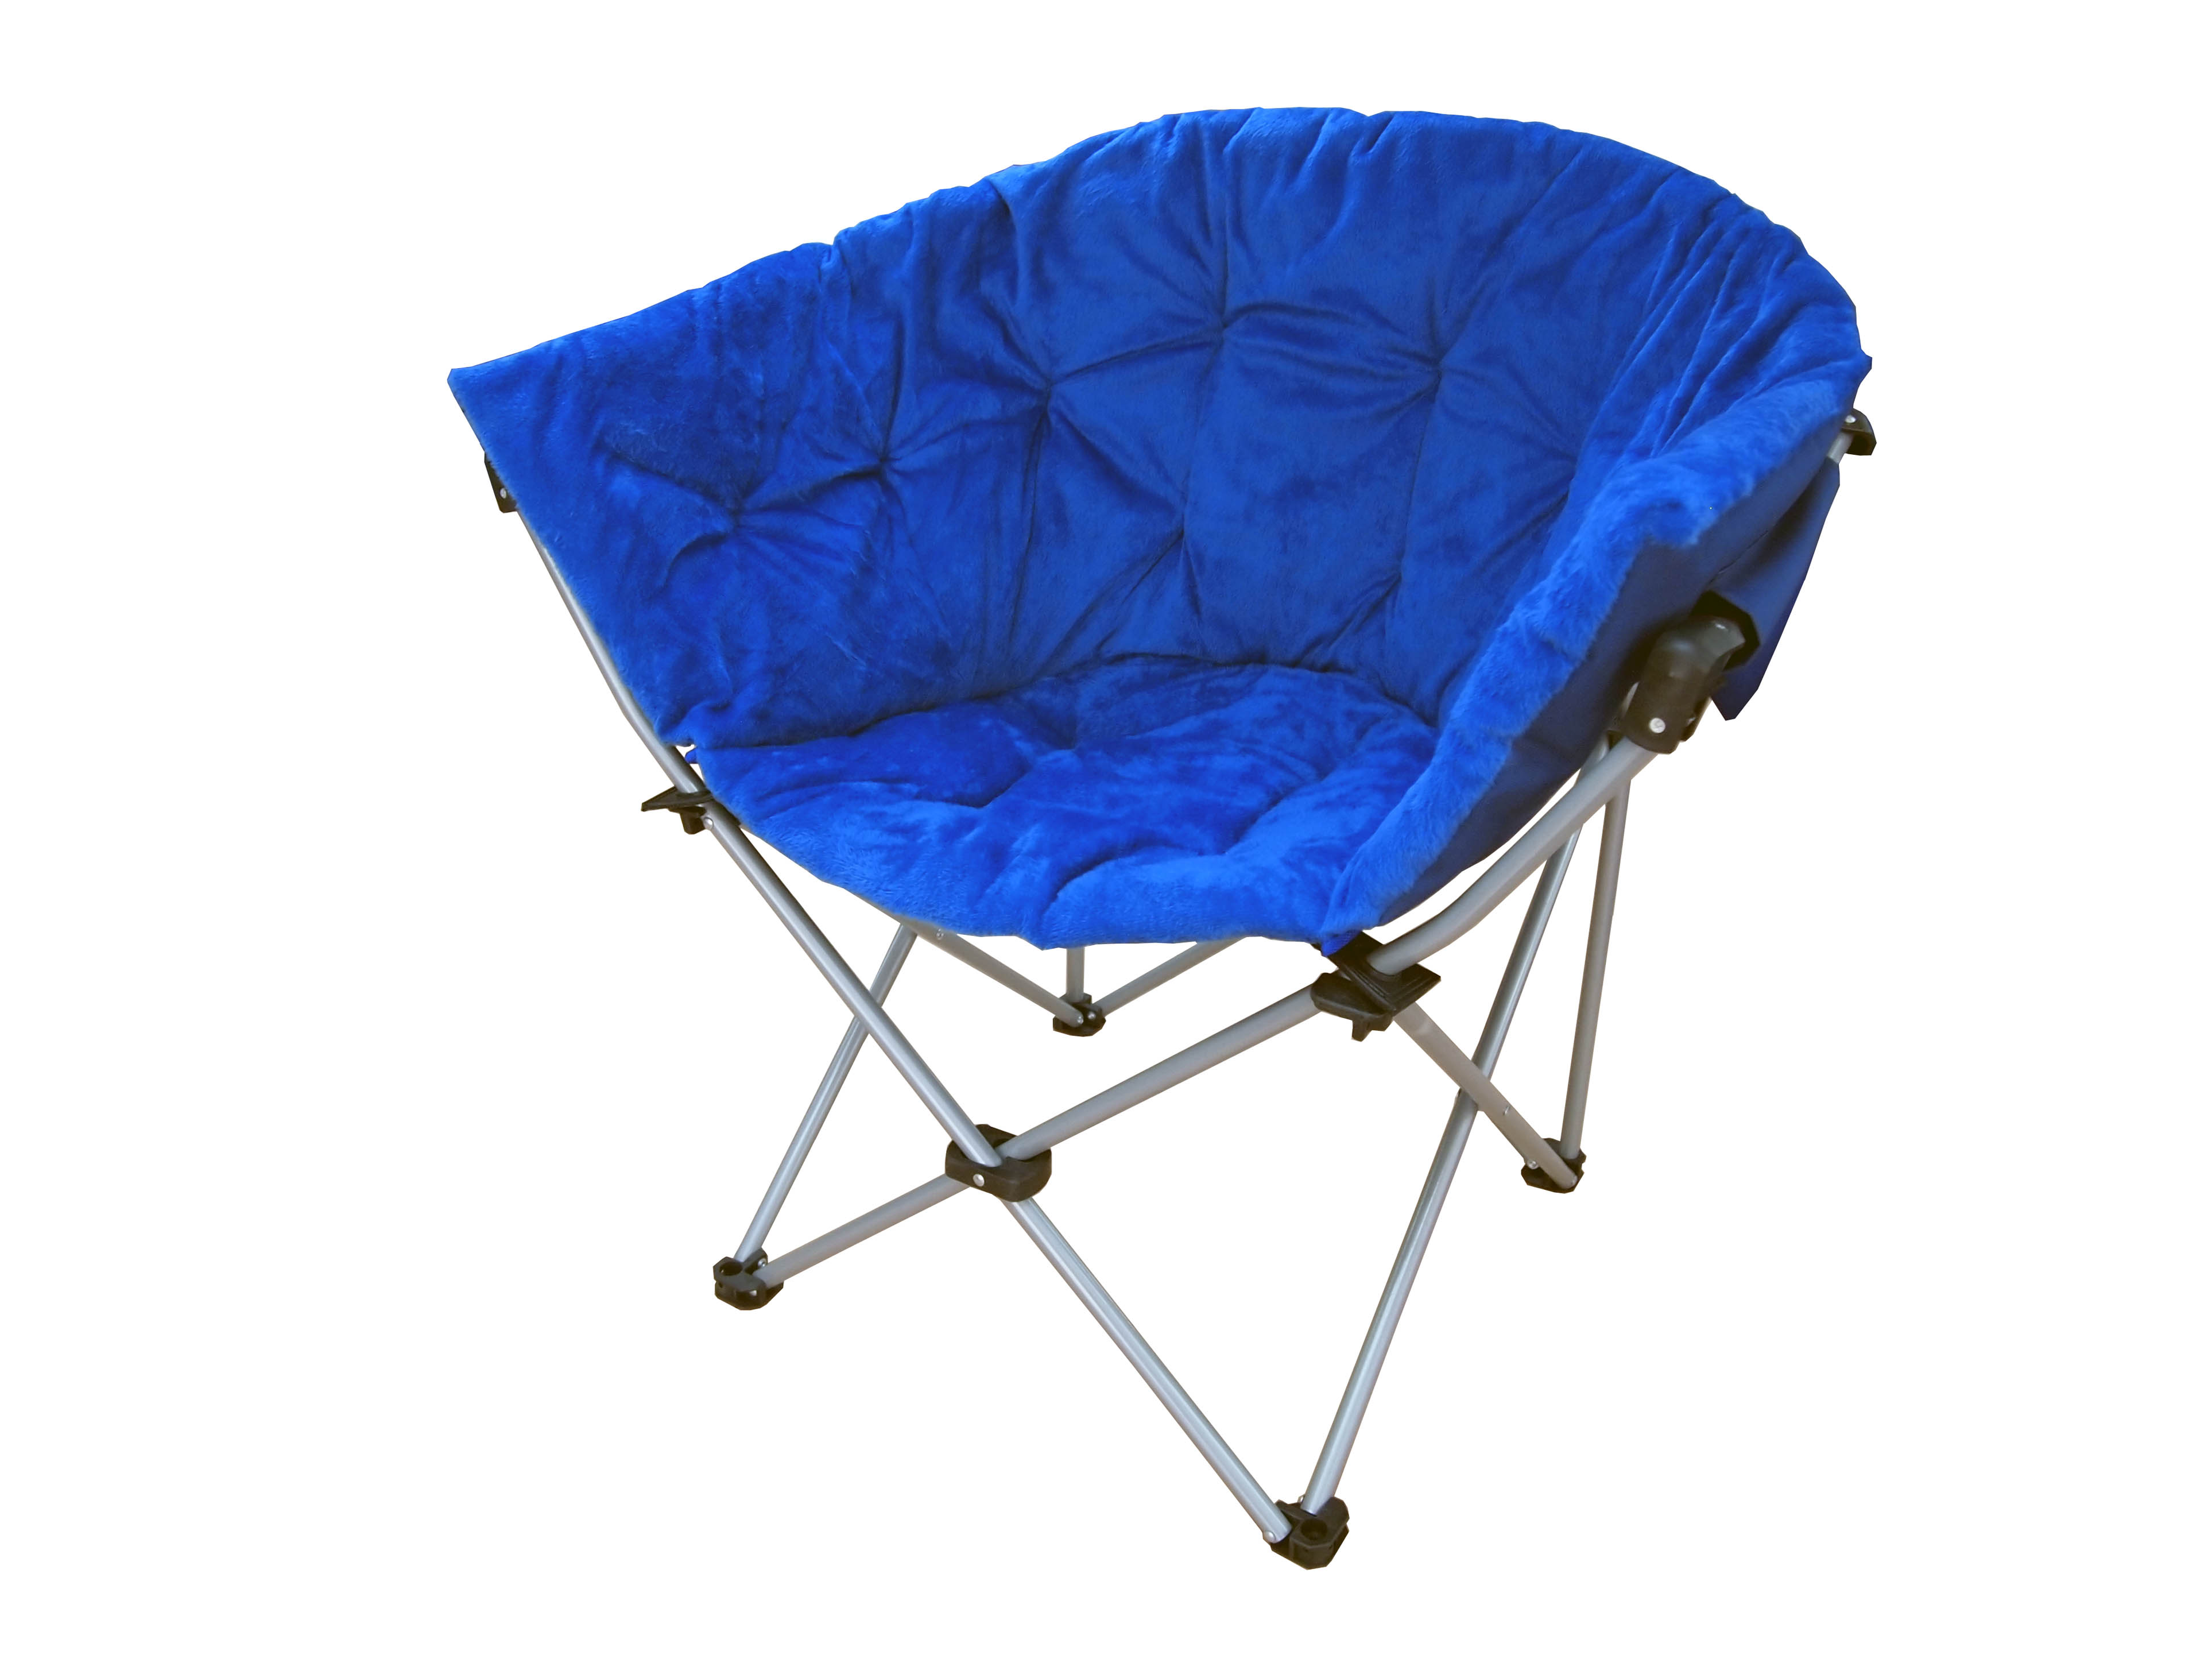 fishing chair uk lazy boy recliner covers moon folding camping hiking garden indoor outdoor